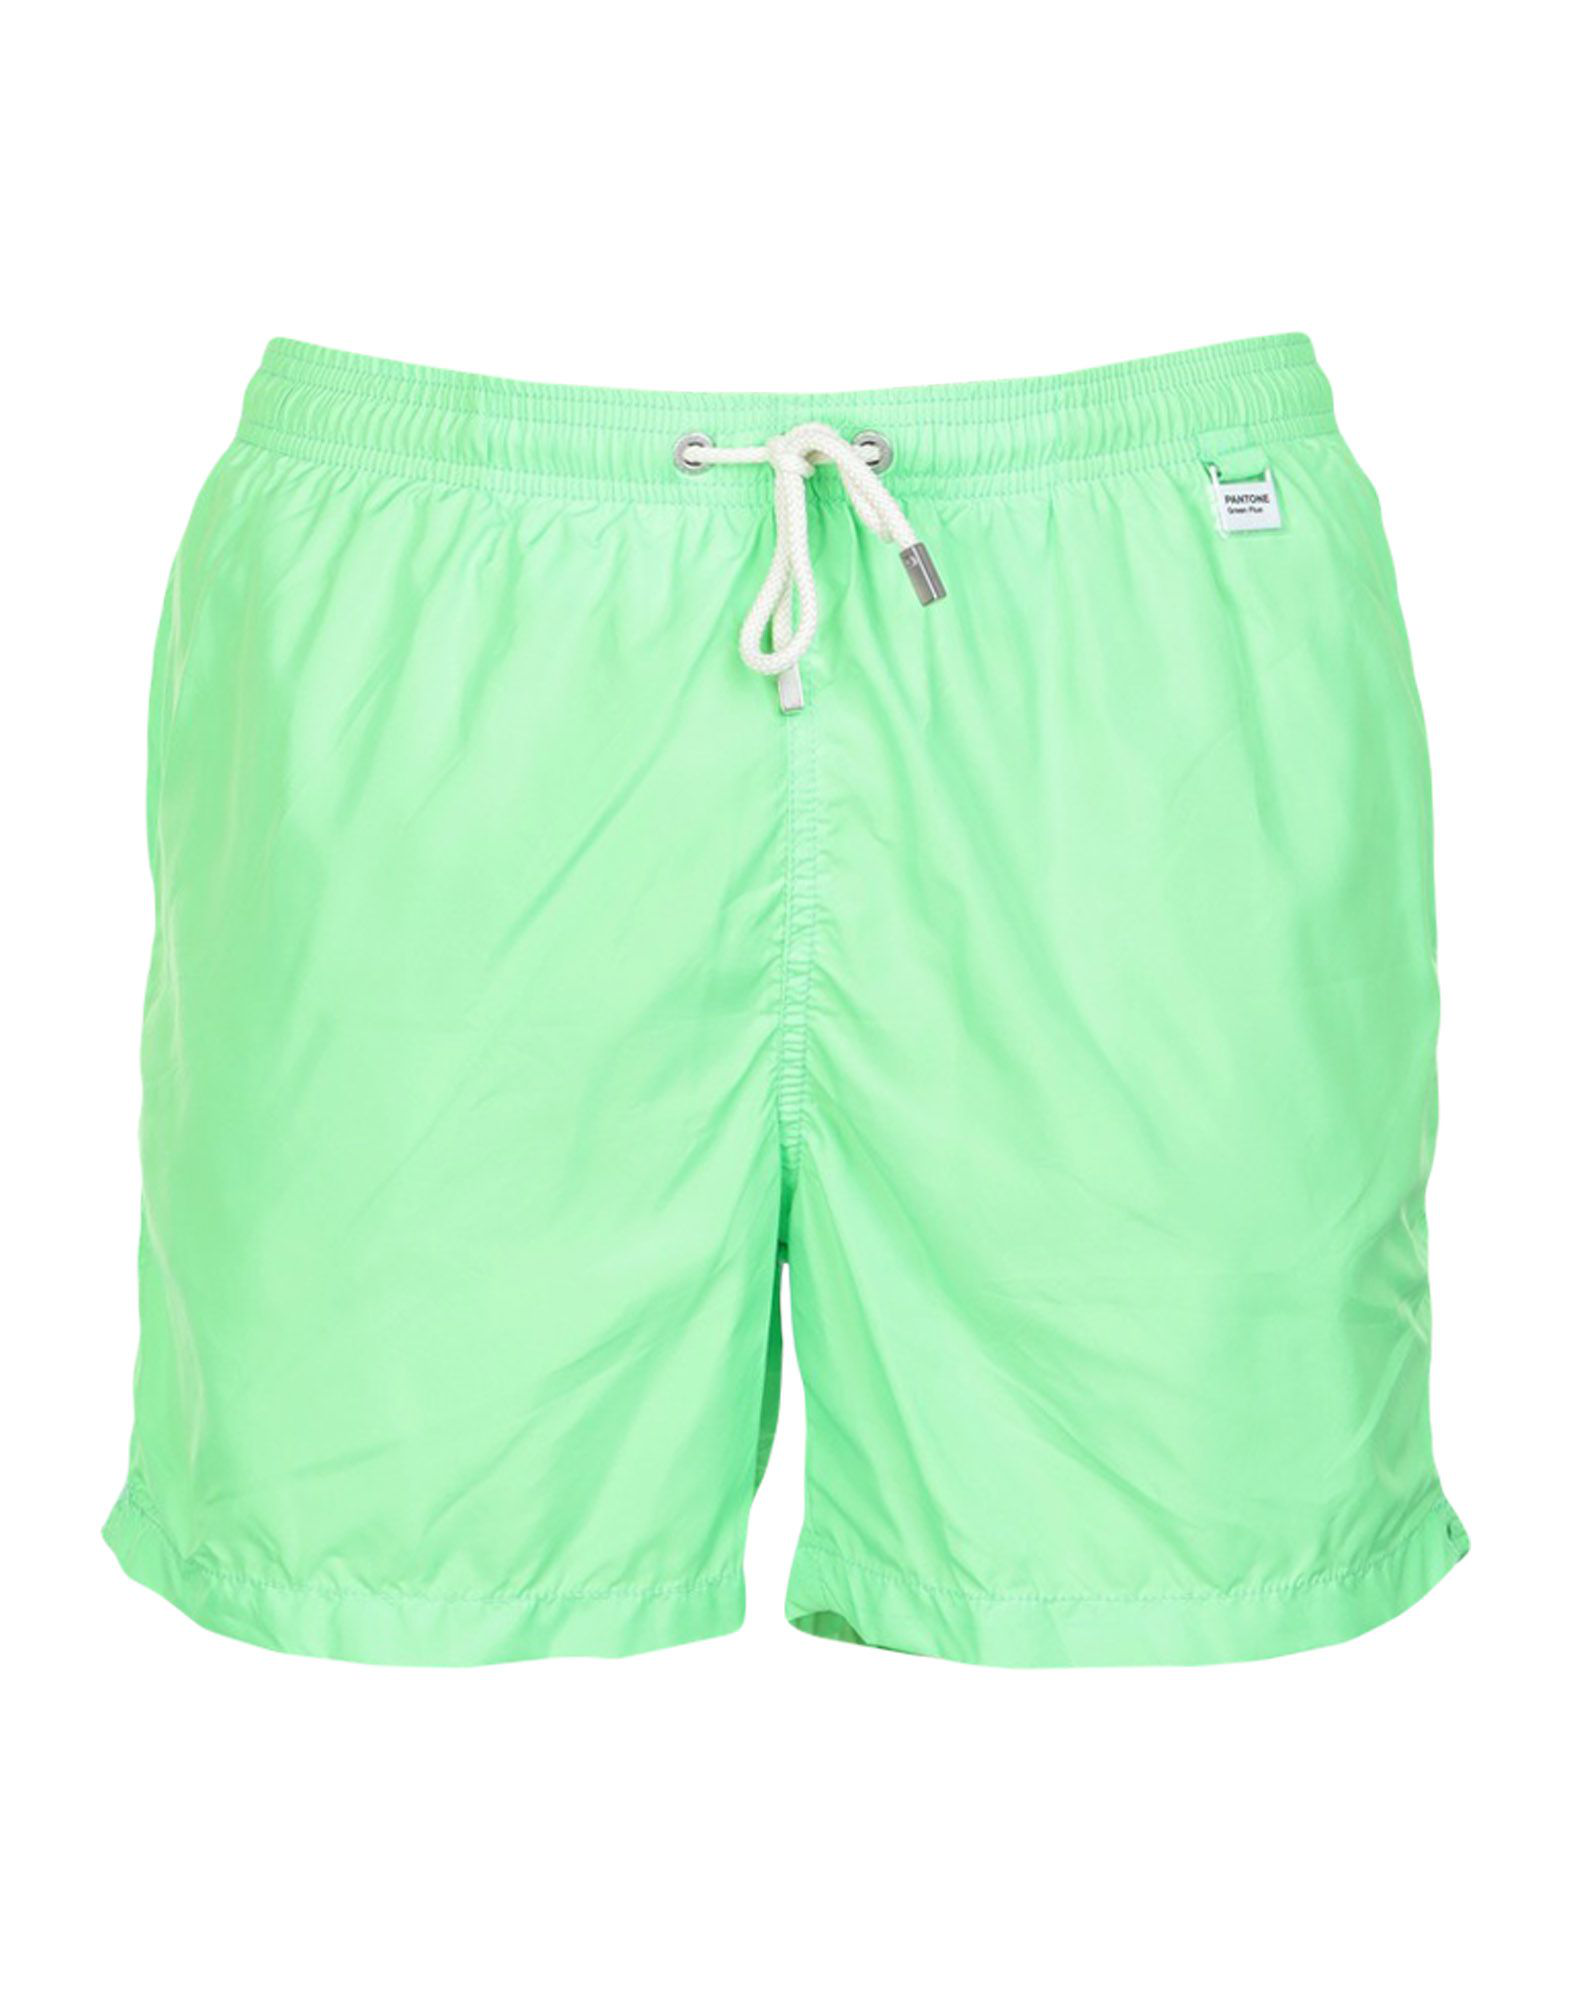 11b4feb6e8 Mc2 Saint Barth Swim Shorts In Light Green | ModeSens